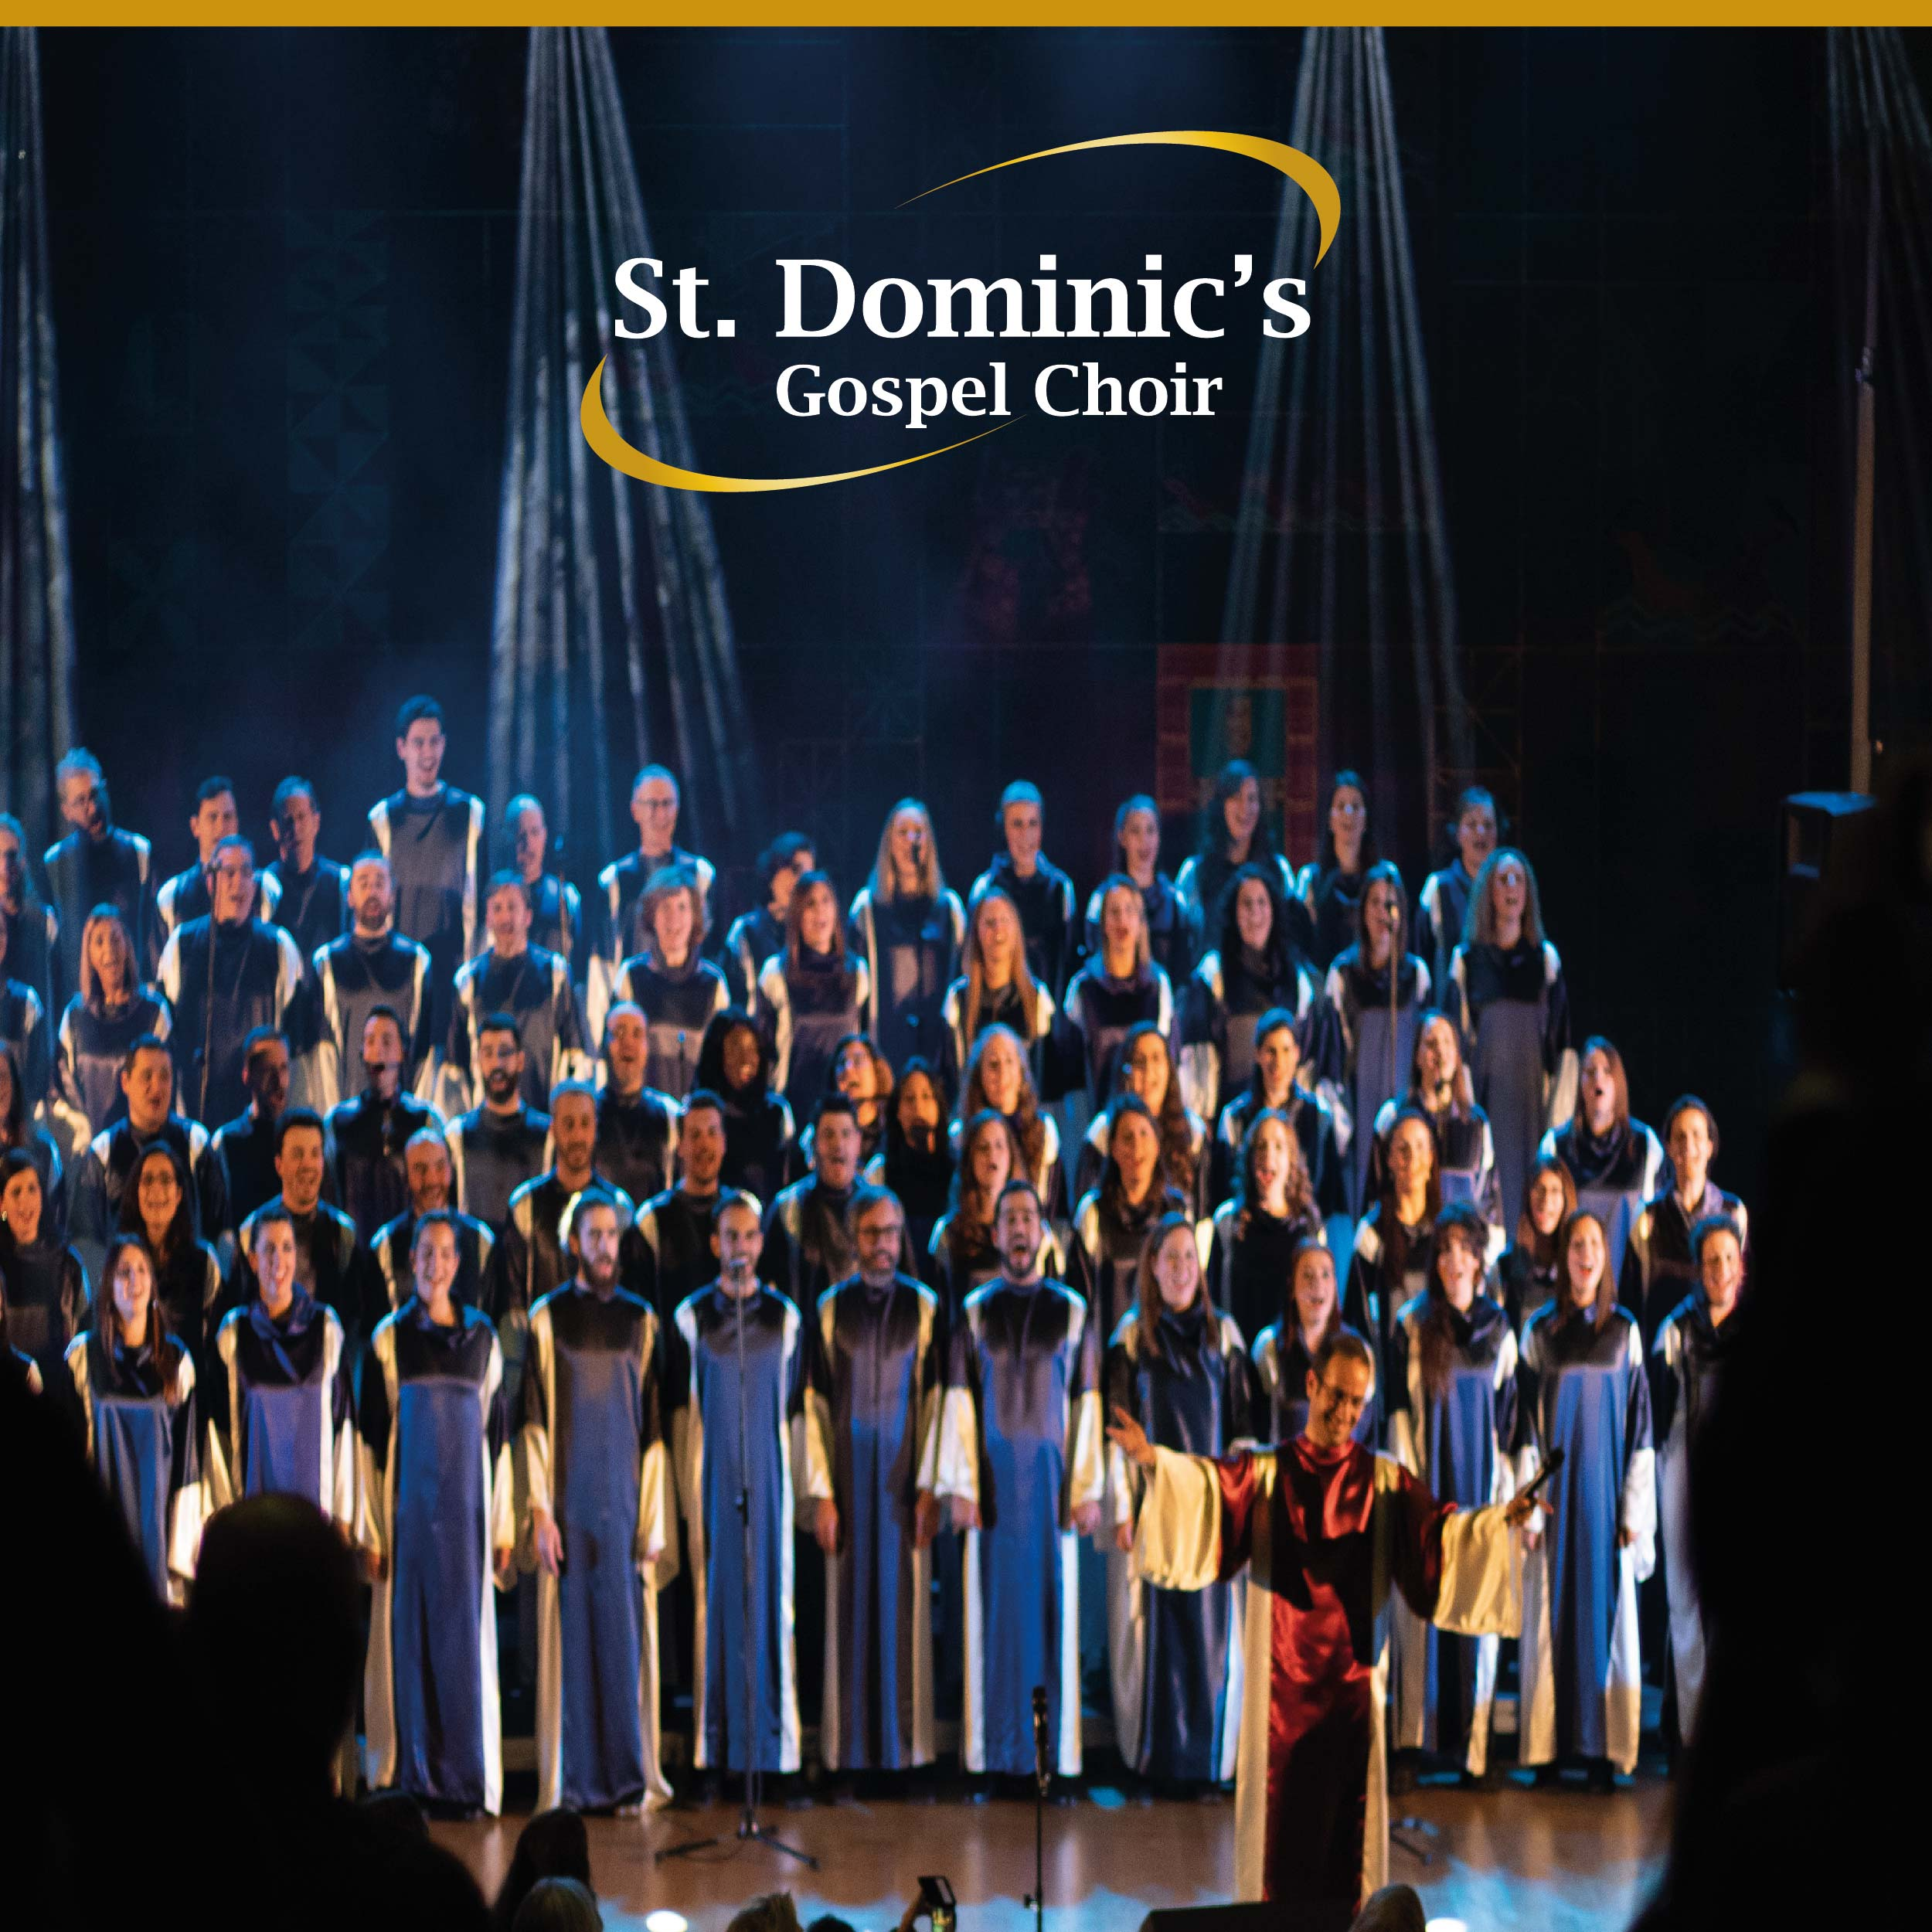 Saint Dominic's Gospel Choir No EUROPARQUE